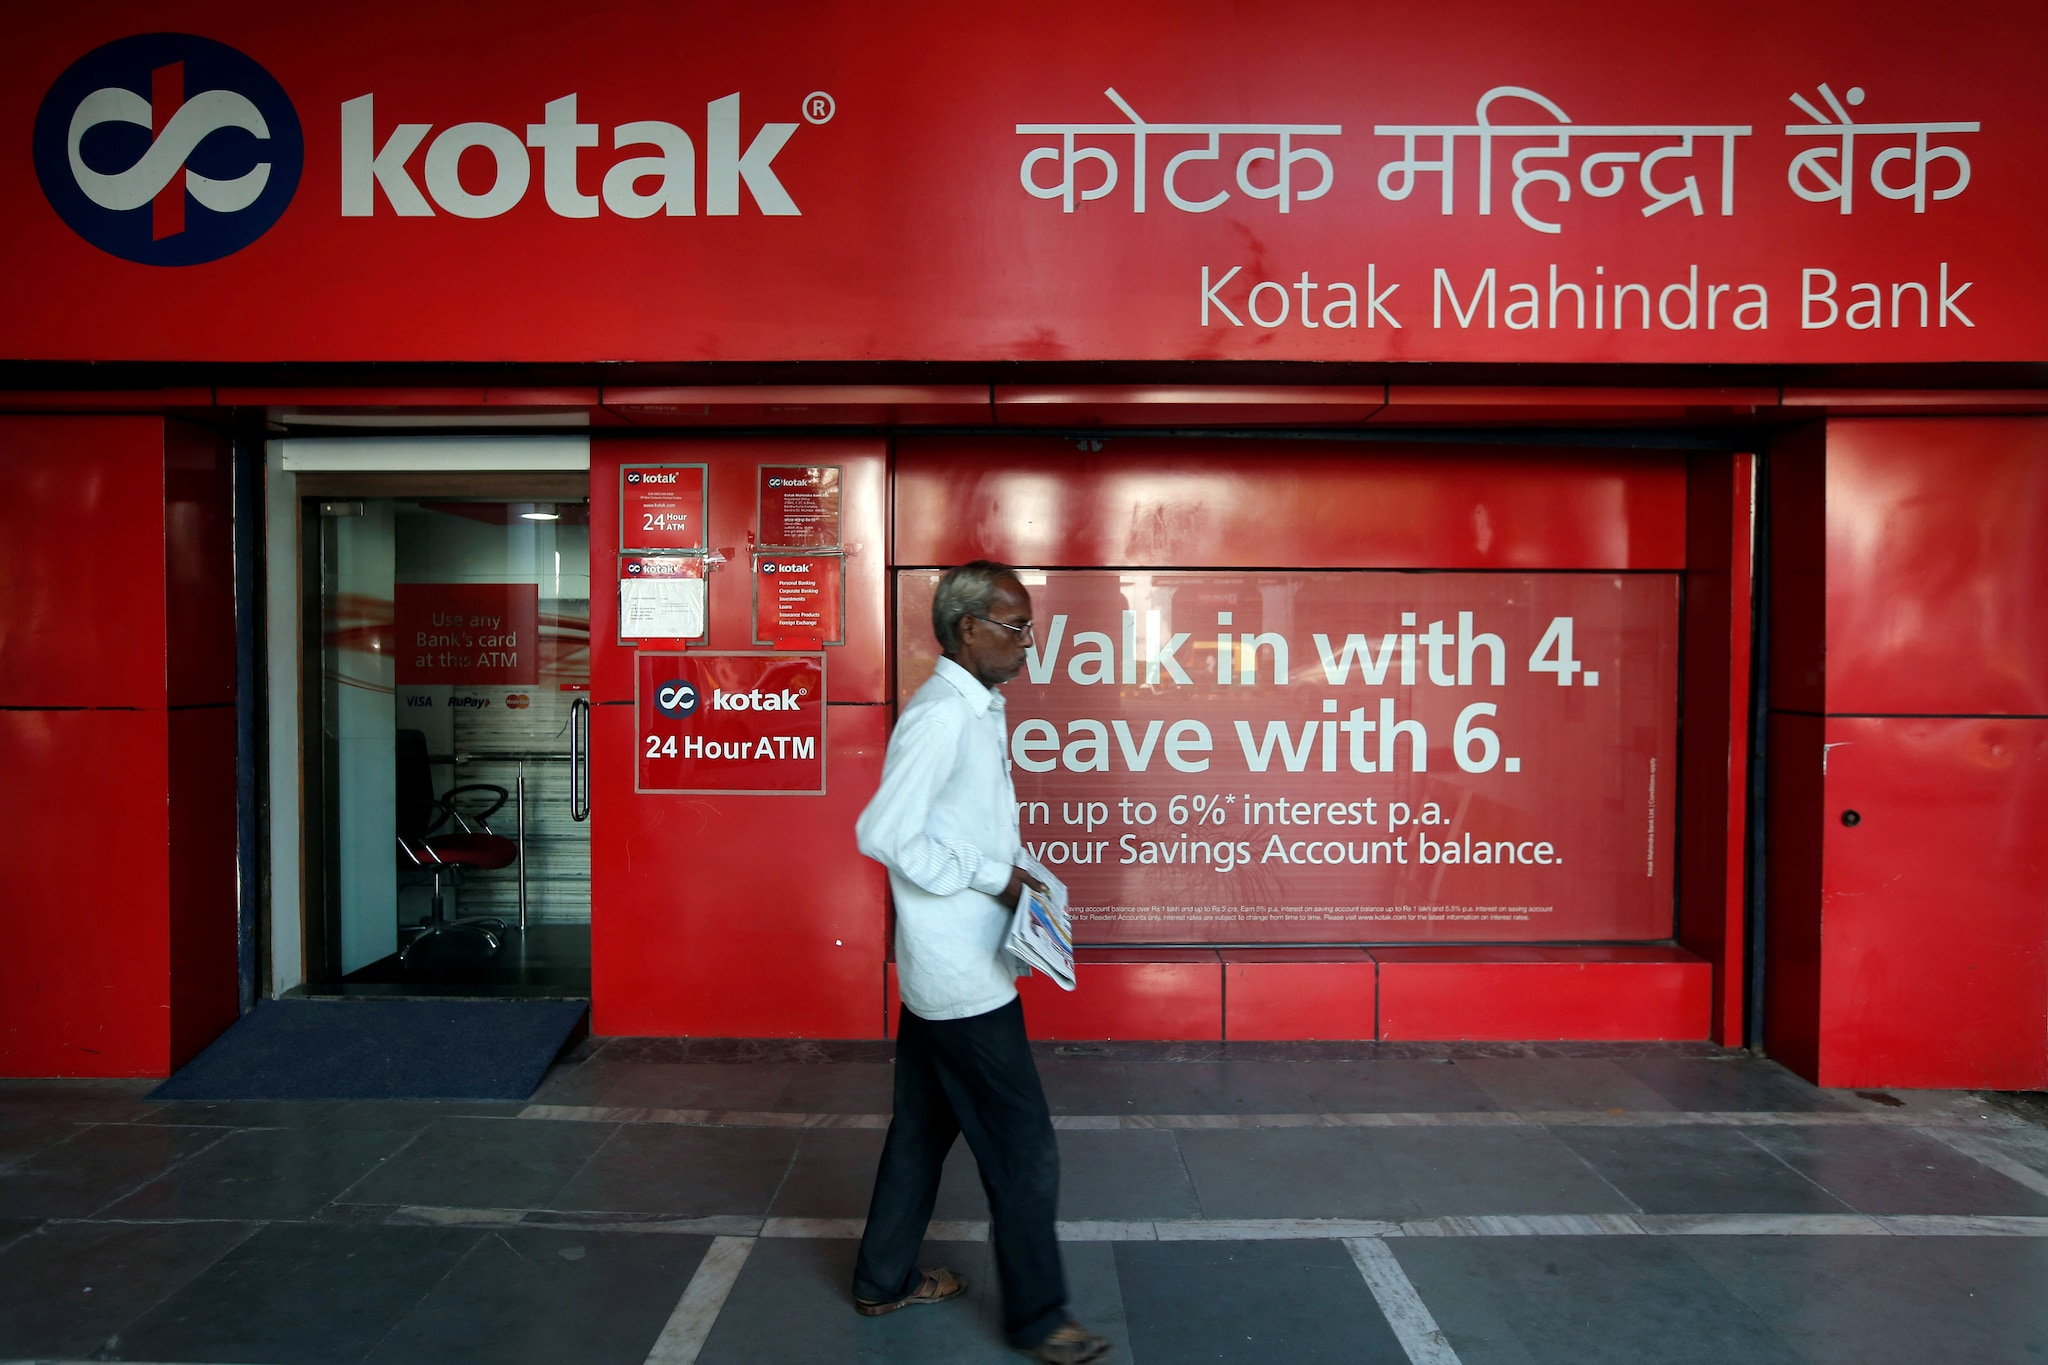 Kotak Mahindra Bank's m-cap fell by Rs 1,389.95 crore to Rs 2,88,708.23 crore. (Image: Reuters)